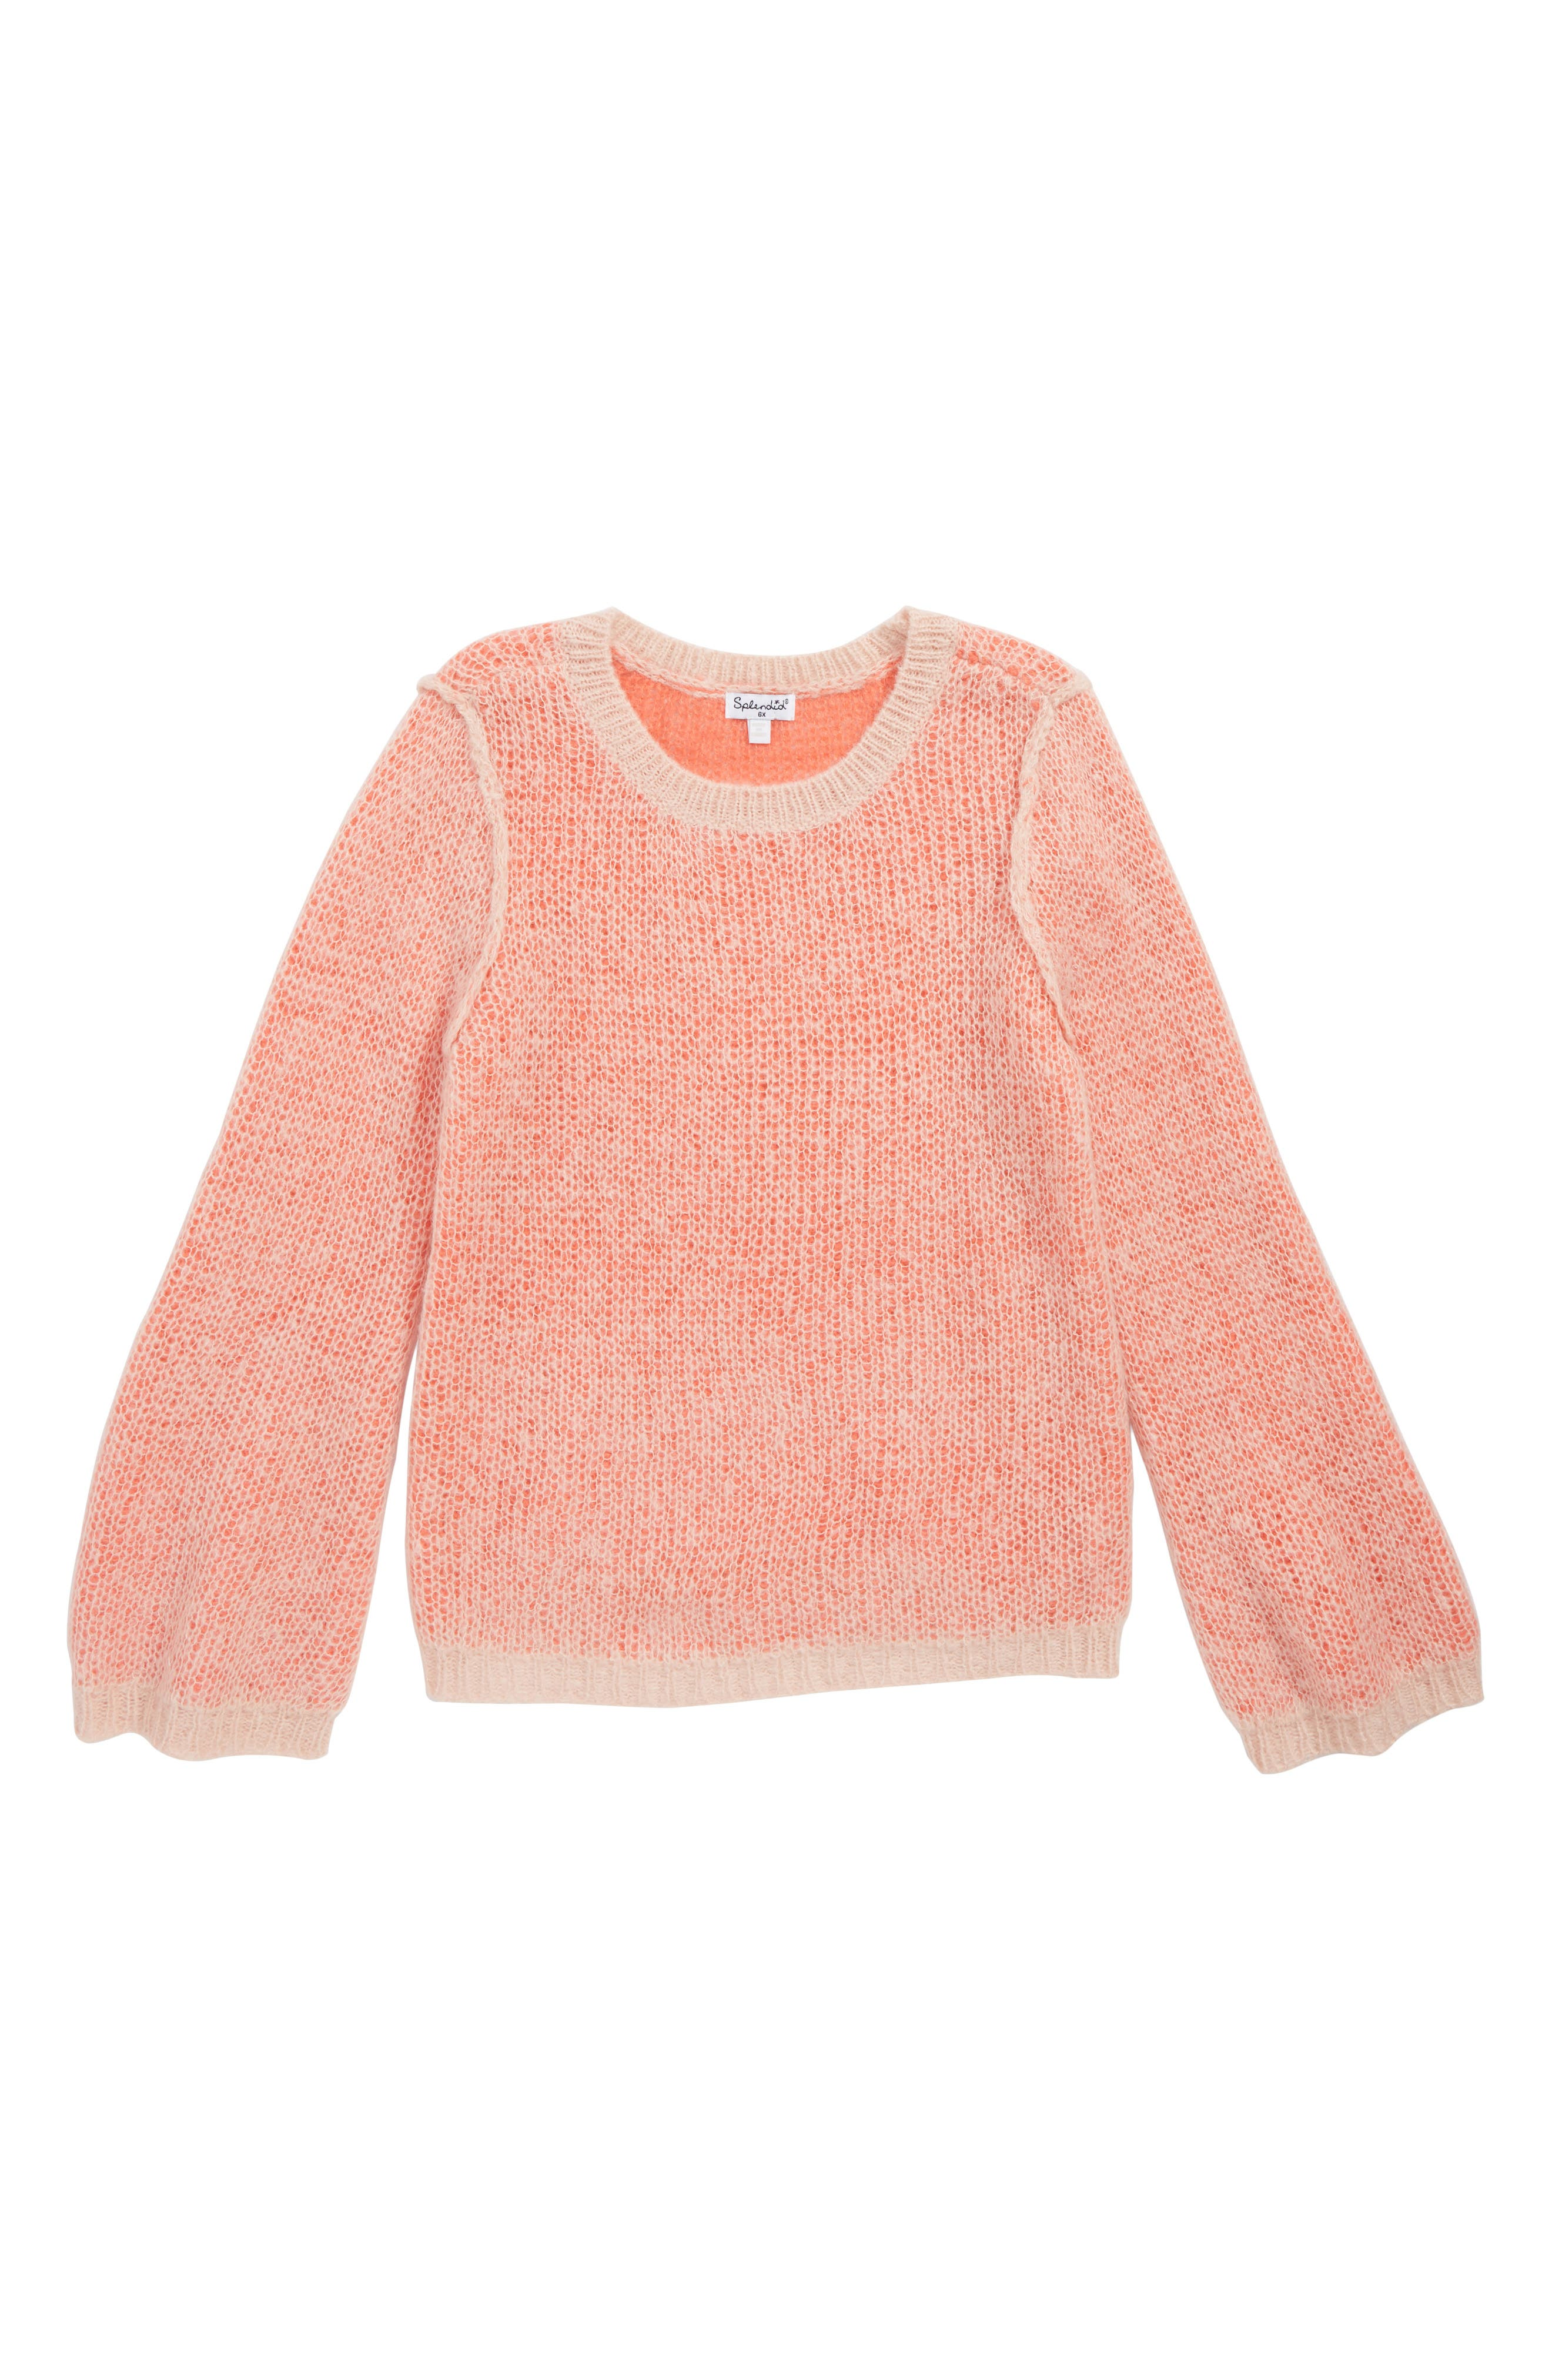 Two-Tone Sweater,                             Main thumbnail 1, color,                             650